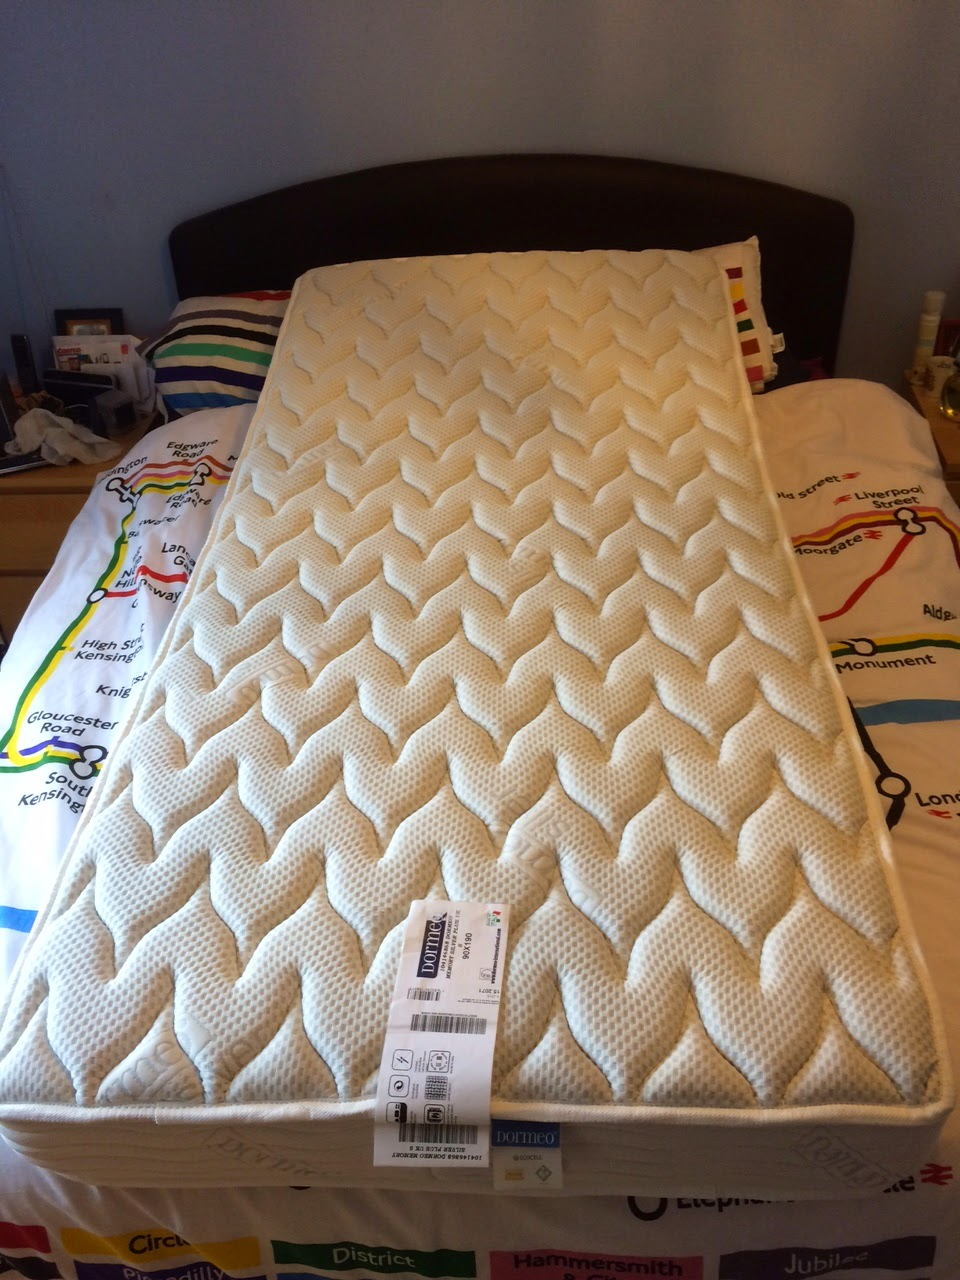 Fancy This is a top quality Dormeo memory foam mattress has a super thick Ecocell and memory foam core with an extra plush Silver cover for maximum fort